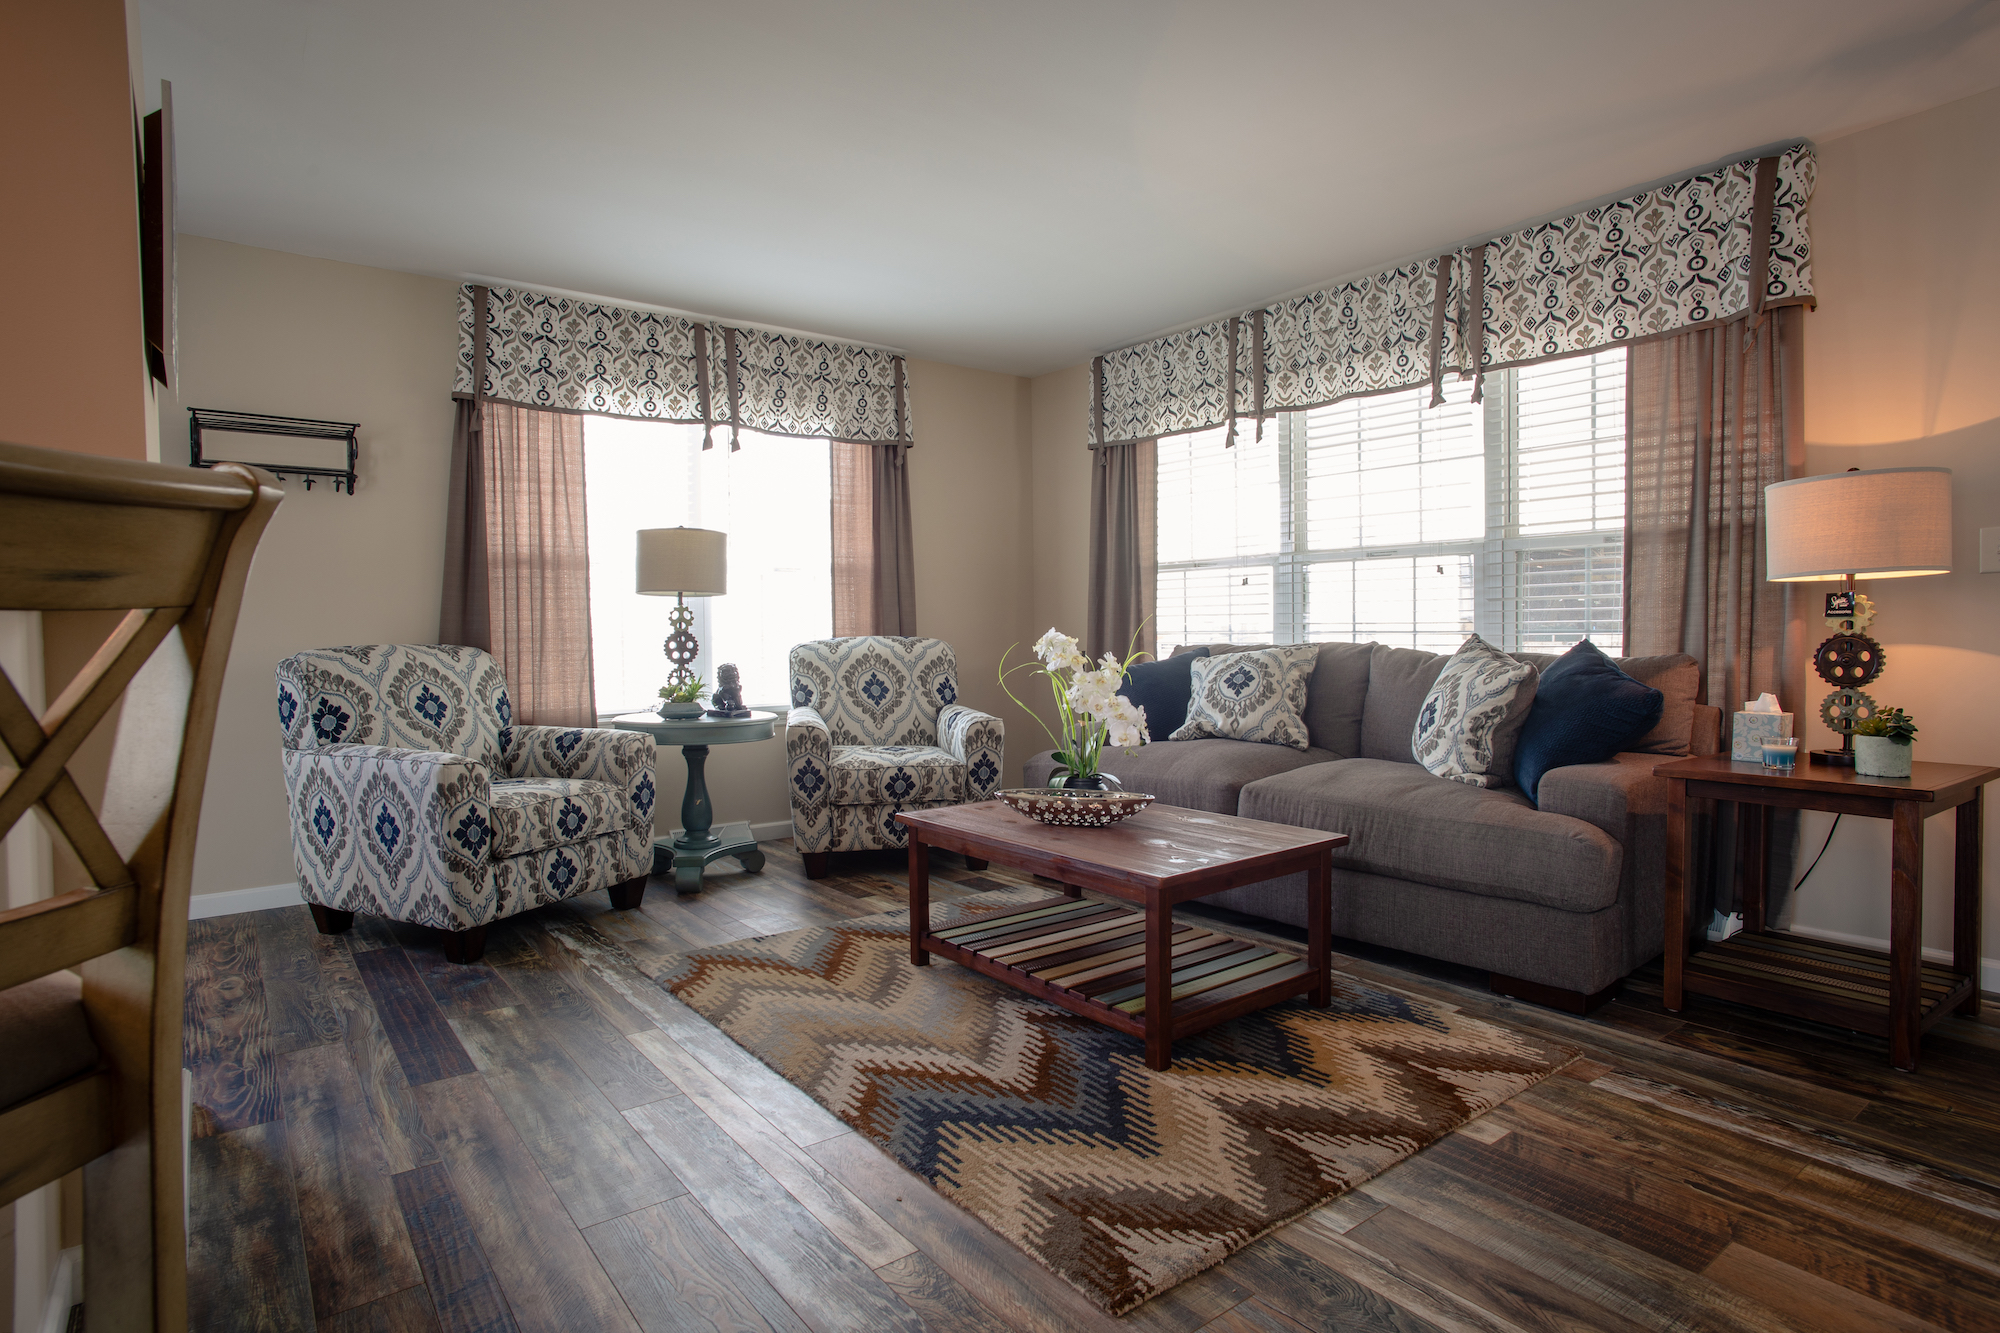 Pleasant_Valley_Homes_Models_45.jpg